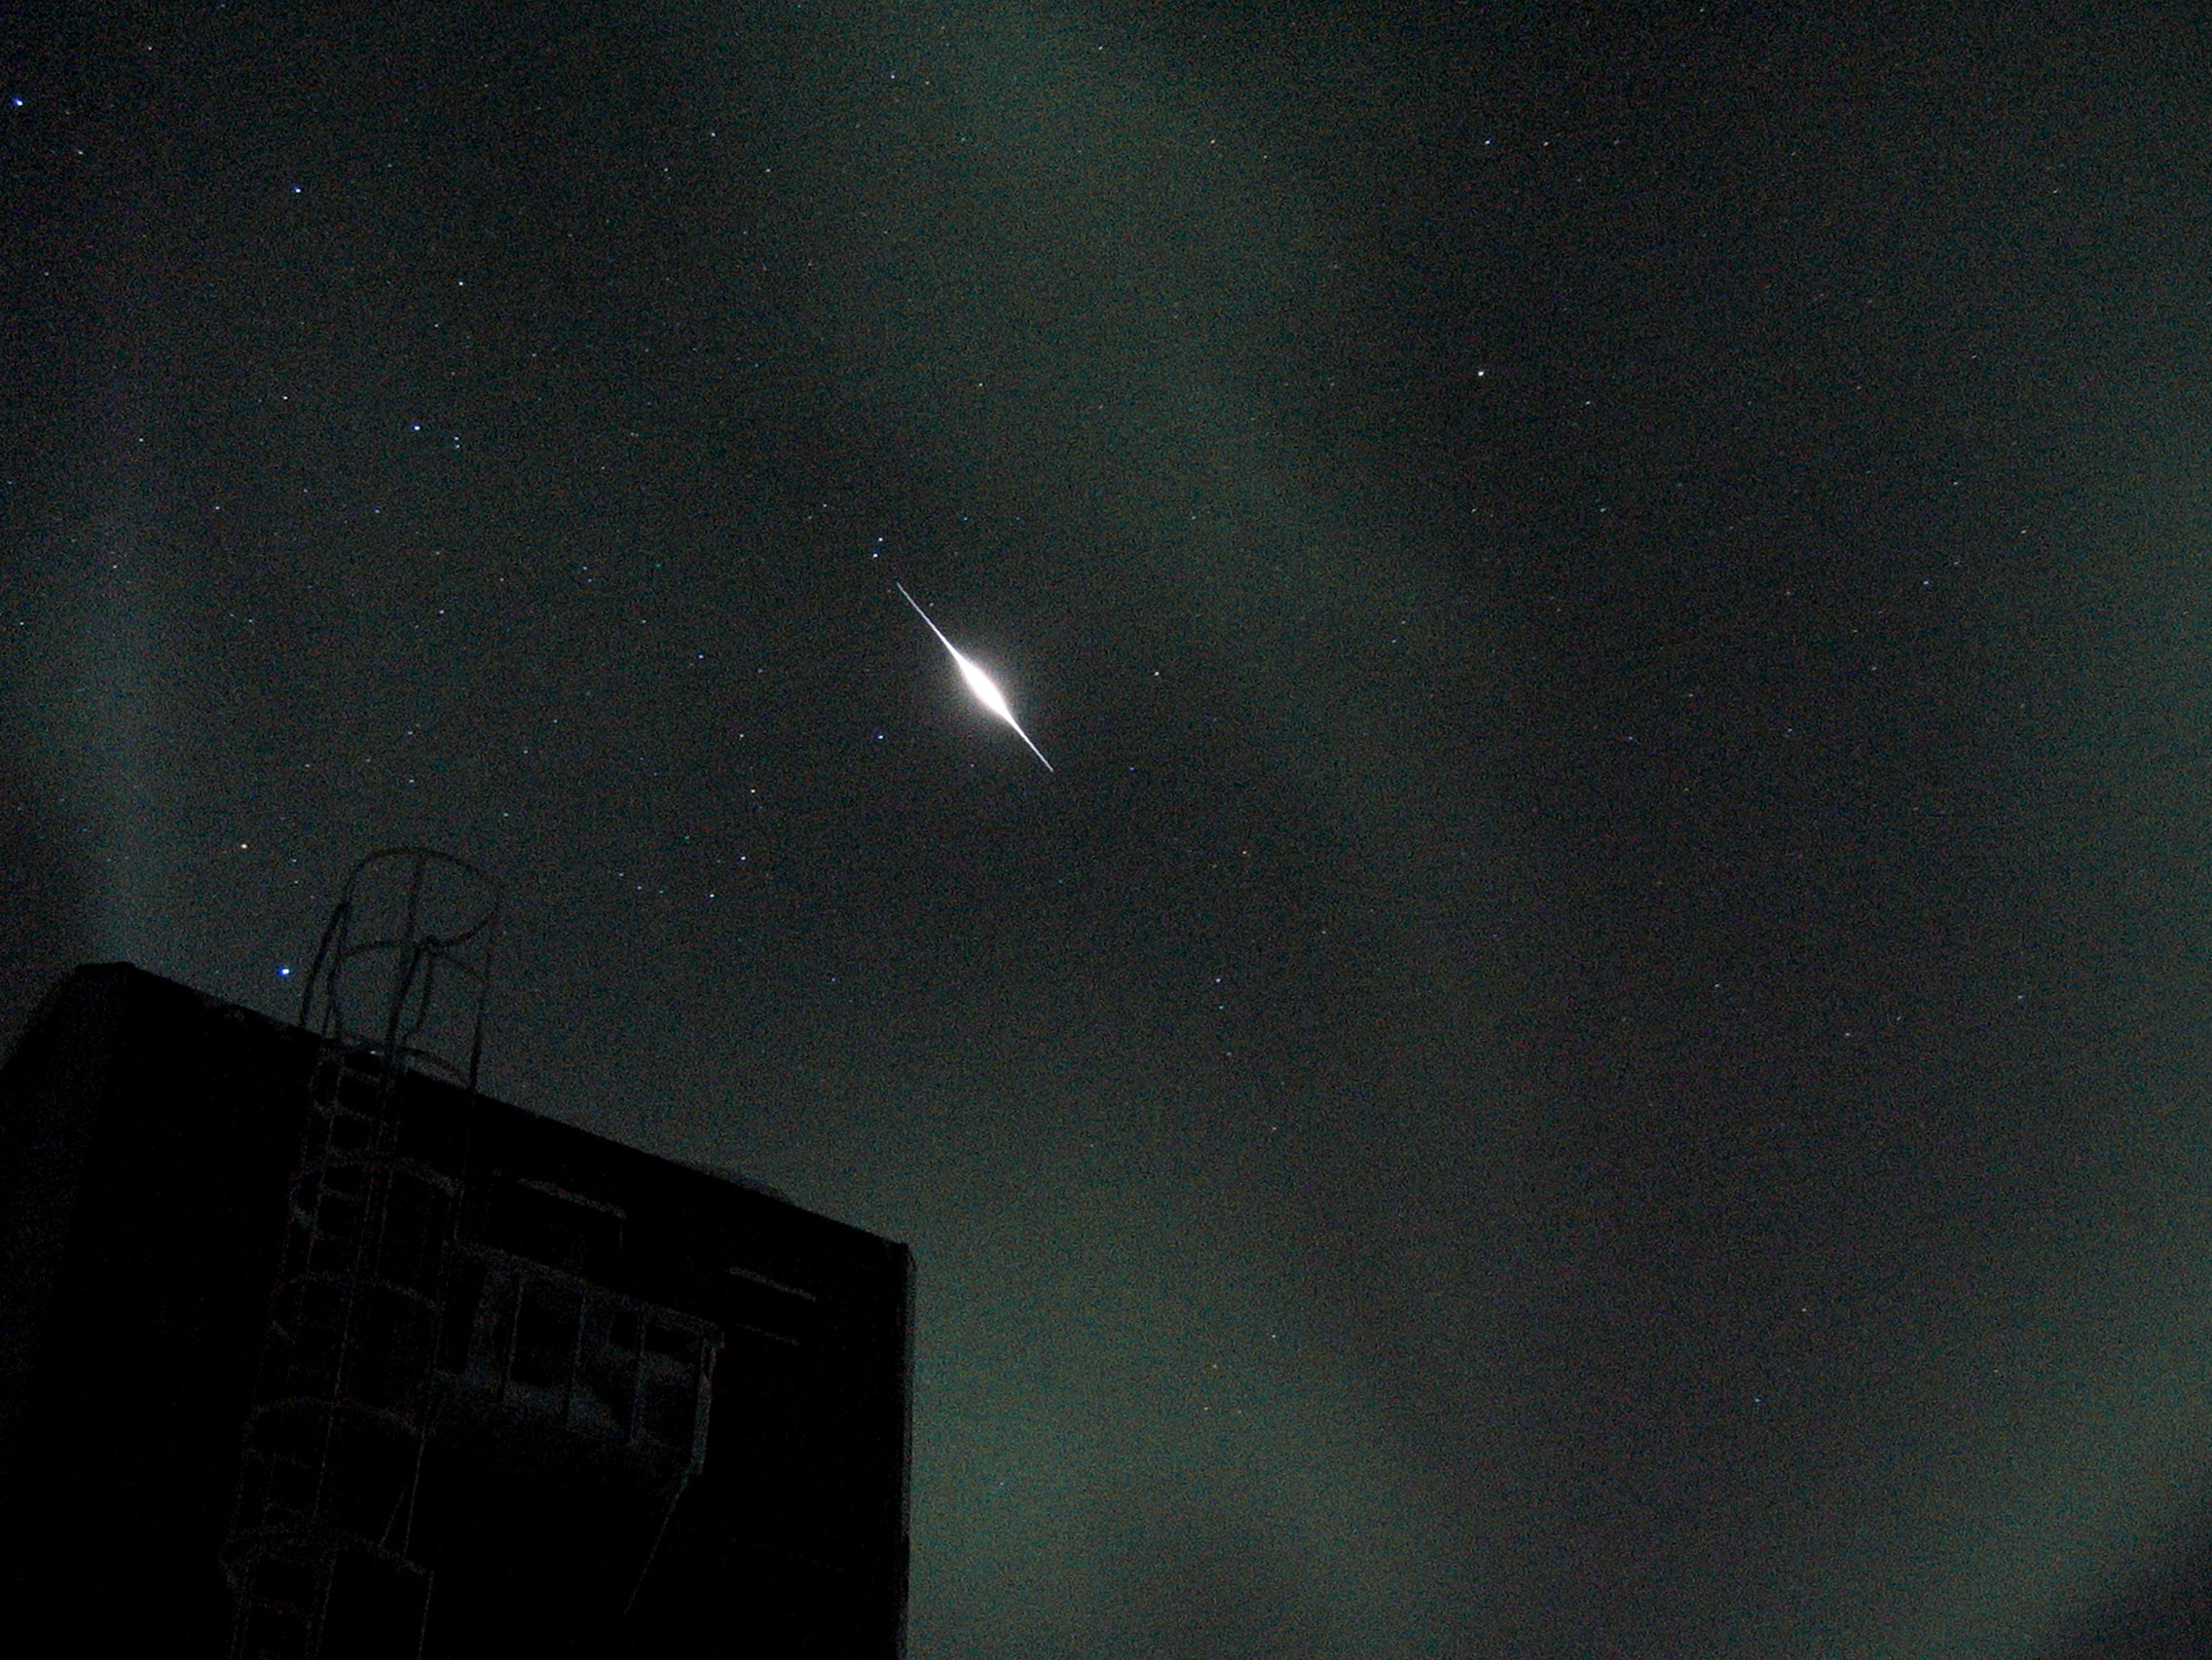 Iridium flare over the South Pole.